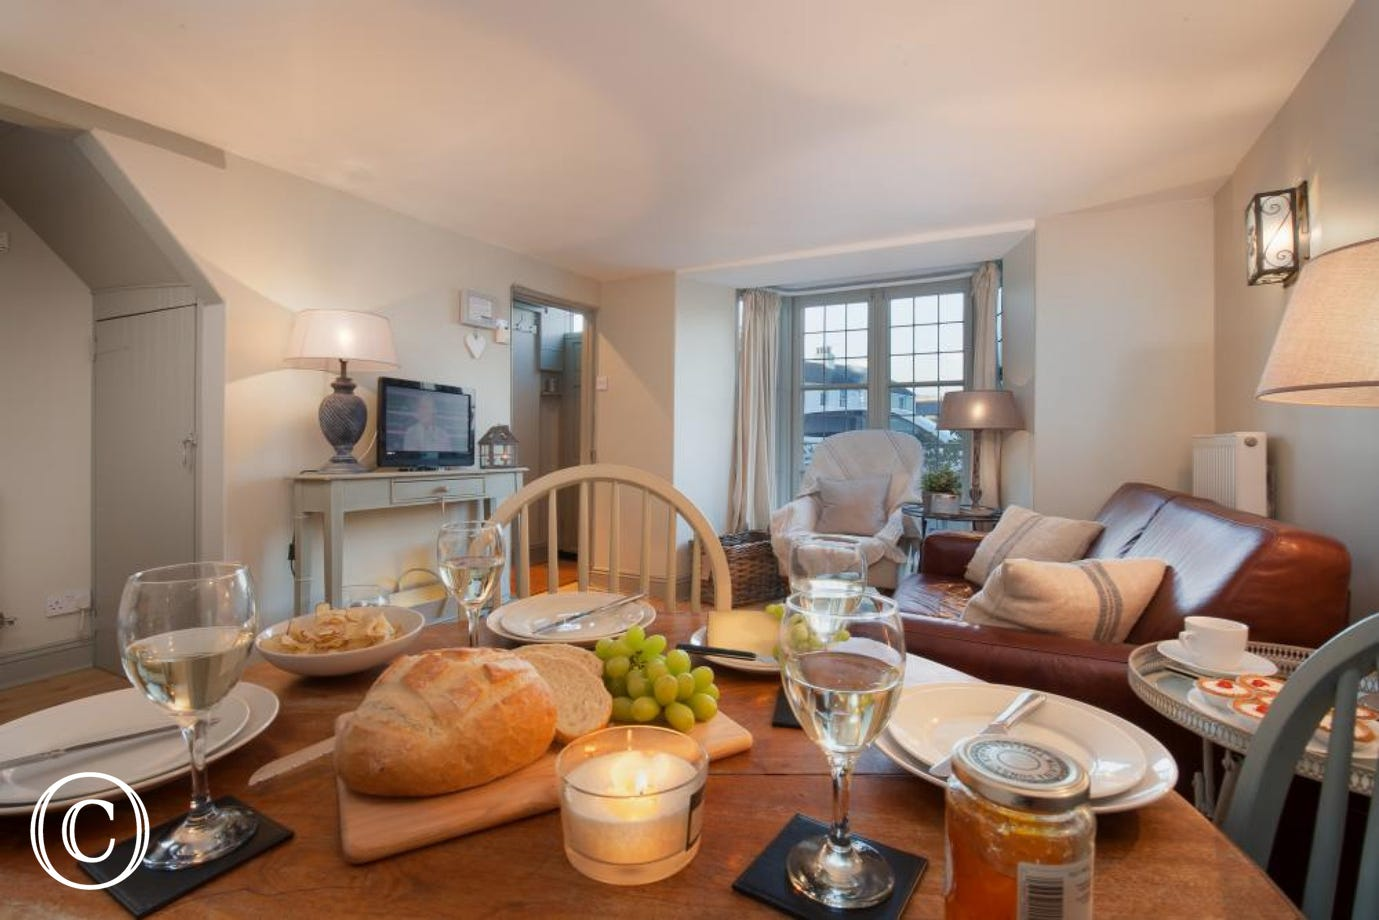 Dining table, view 2 - Compass Cottage, Shaldon